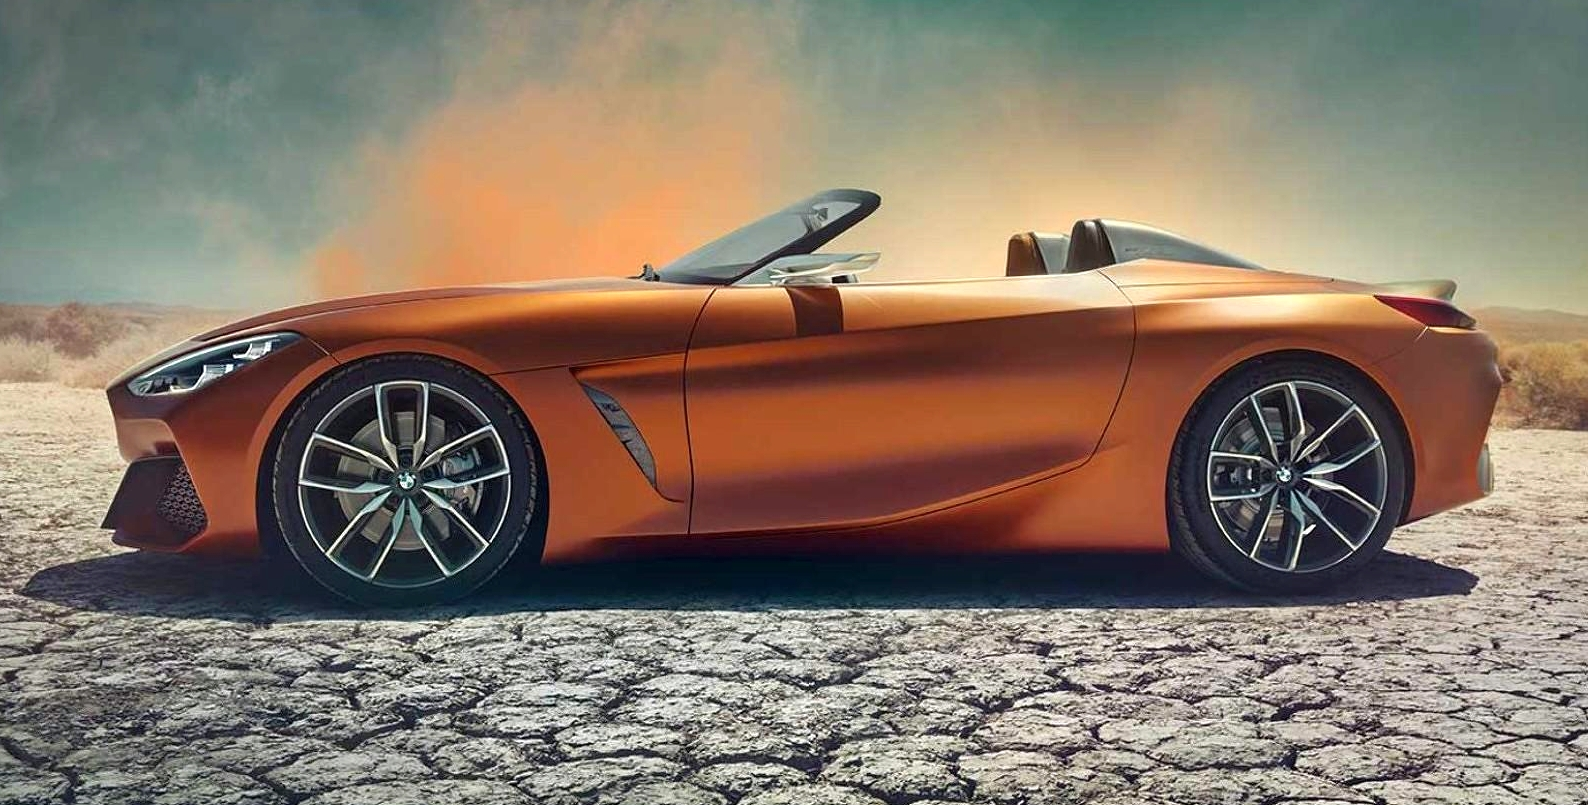 Bmw Z4 Concept Images Leaked Ahead Of Premiere